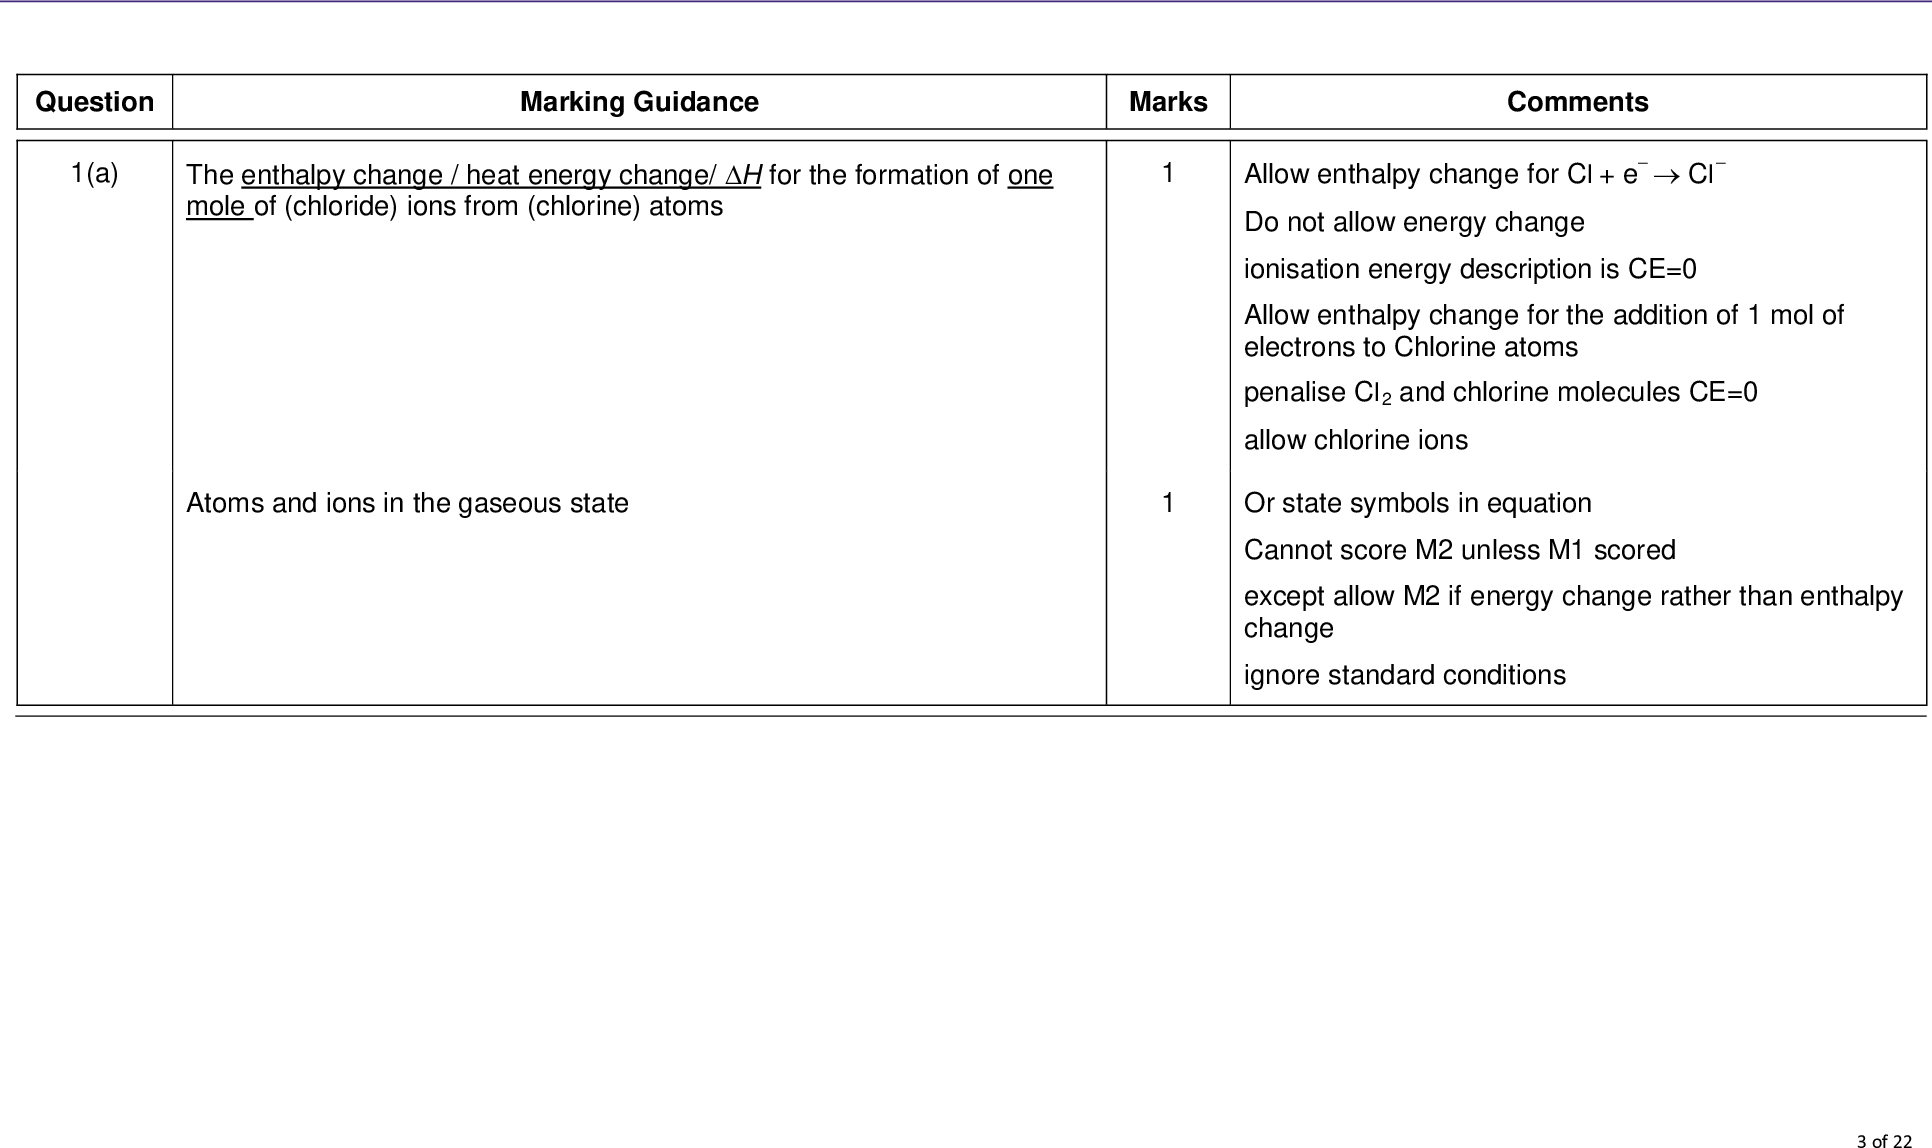 question a marking guidance the enthalpy change heat energy change h for the formation of one mole of chloride ions from chlorine atoms marks mark scheme a level chemistry chem june comments allow enthalpy change for cl e cl do not allow energy change ionisation energy description is ce allow enthalpy change for the addition of mol of electrons to chlorine atoms penalise cl and chlorine molecules ce allow chlorine ions atoms and ions in the gaseous state or state symbols in equation cannot score m unless m scored except allow m if energy change rather than enthalpy change ignore standard conditions of mg g cl g m mg g e cl g m mg g e cl g m mg g e cl g m mg g cl g m mg s cl g m mgcl s b mark scheme a level chemistry chem june allow e for electrons i e no charge state symbols essential if no electrons allow m but not m m if incorrect cl used allow m and m for correct electrons scores of c hf mgcl ha mg st ie mg nd ie mg ha cl ea cl le mgcl ea cl ea cl kj mol d i magnesium ion is smaller and more charged than the sodium ion or magnesium ion has higher charge to size ratio charge density magnesium ion attracts water more strongly enthalpy change le mgcl hhydions kj mol d ii mark scheme a level chemistry chem june allow enthalpy of formation sum of other enthalpy changes incl lattice formation allow to allow m and m for allow out of for or but award if due to arithmetic error after correct m also allow for units not essential but penalise incorrect units look for a transcription error and mark as ae do not allow wrong charge on ion if given do not allow similar size for m do not allow mass charge ratio mark independently mention of intermolecular forces magnesium atoms or atomic radius ce units not essential but penalise incorrect units of